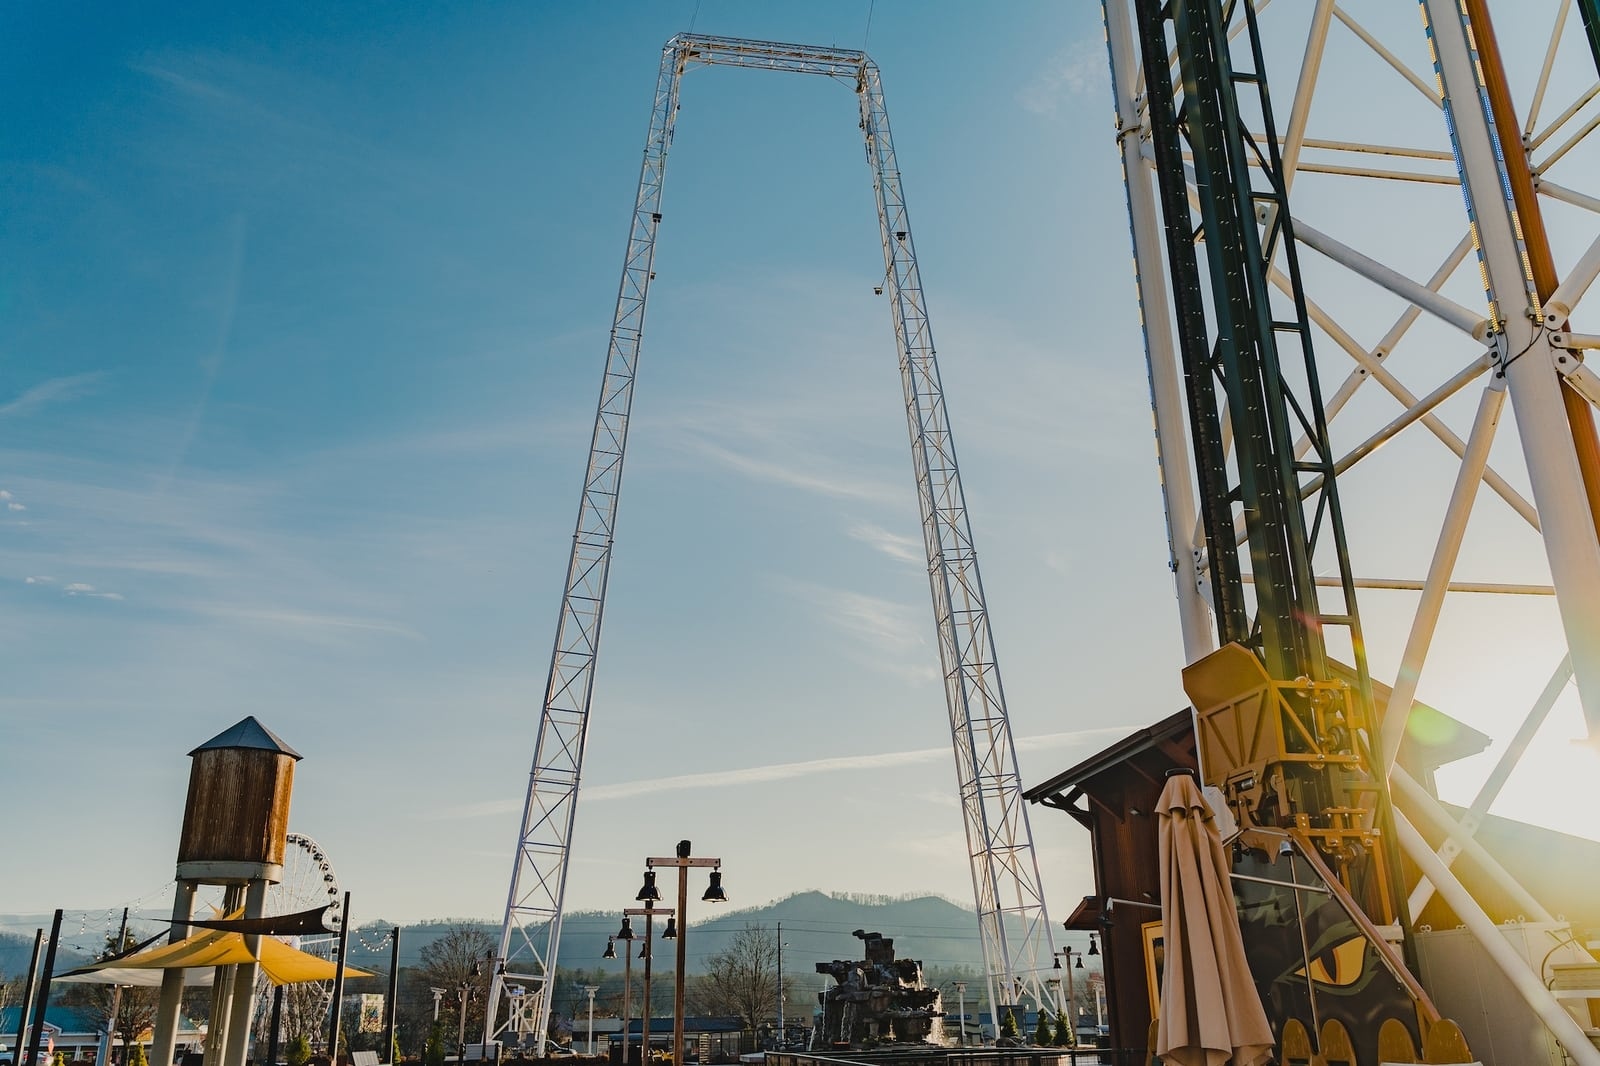 the mountain monster tower in front of the mountain mile in pigeon forge